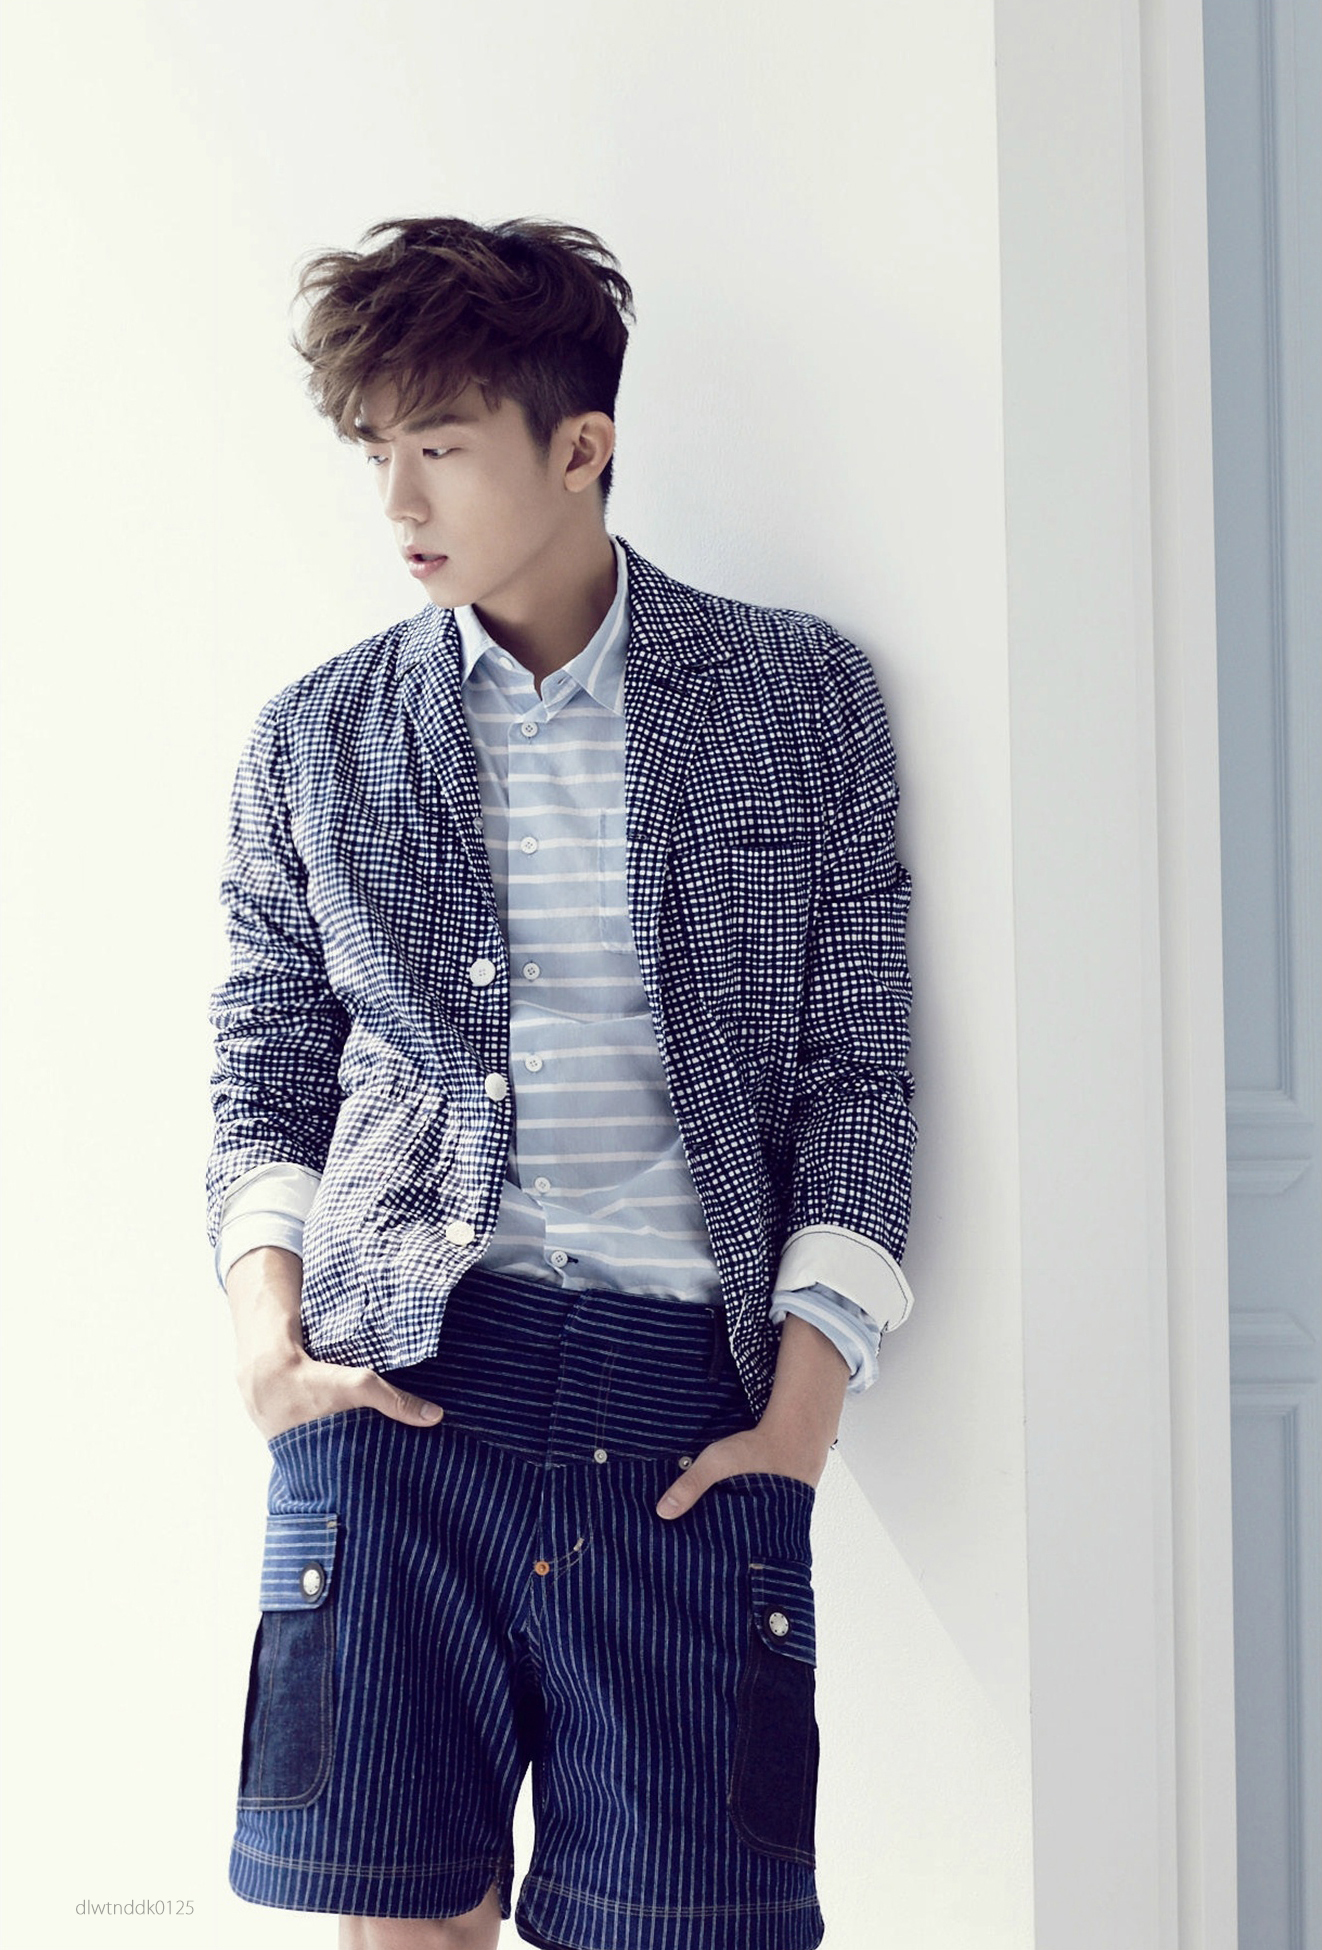 [Photoshoot] 2PM for High Cut SK - Celebrity Photos ...